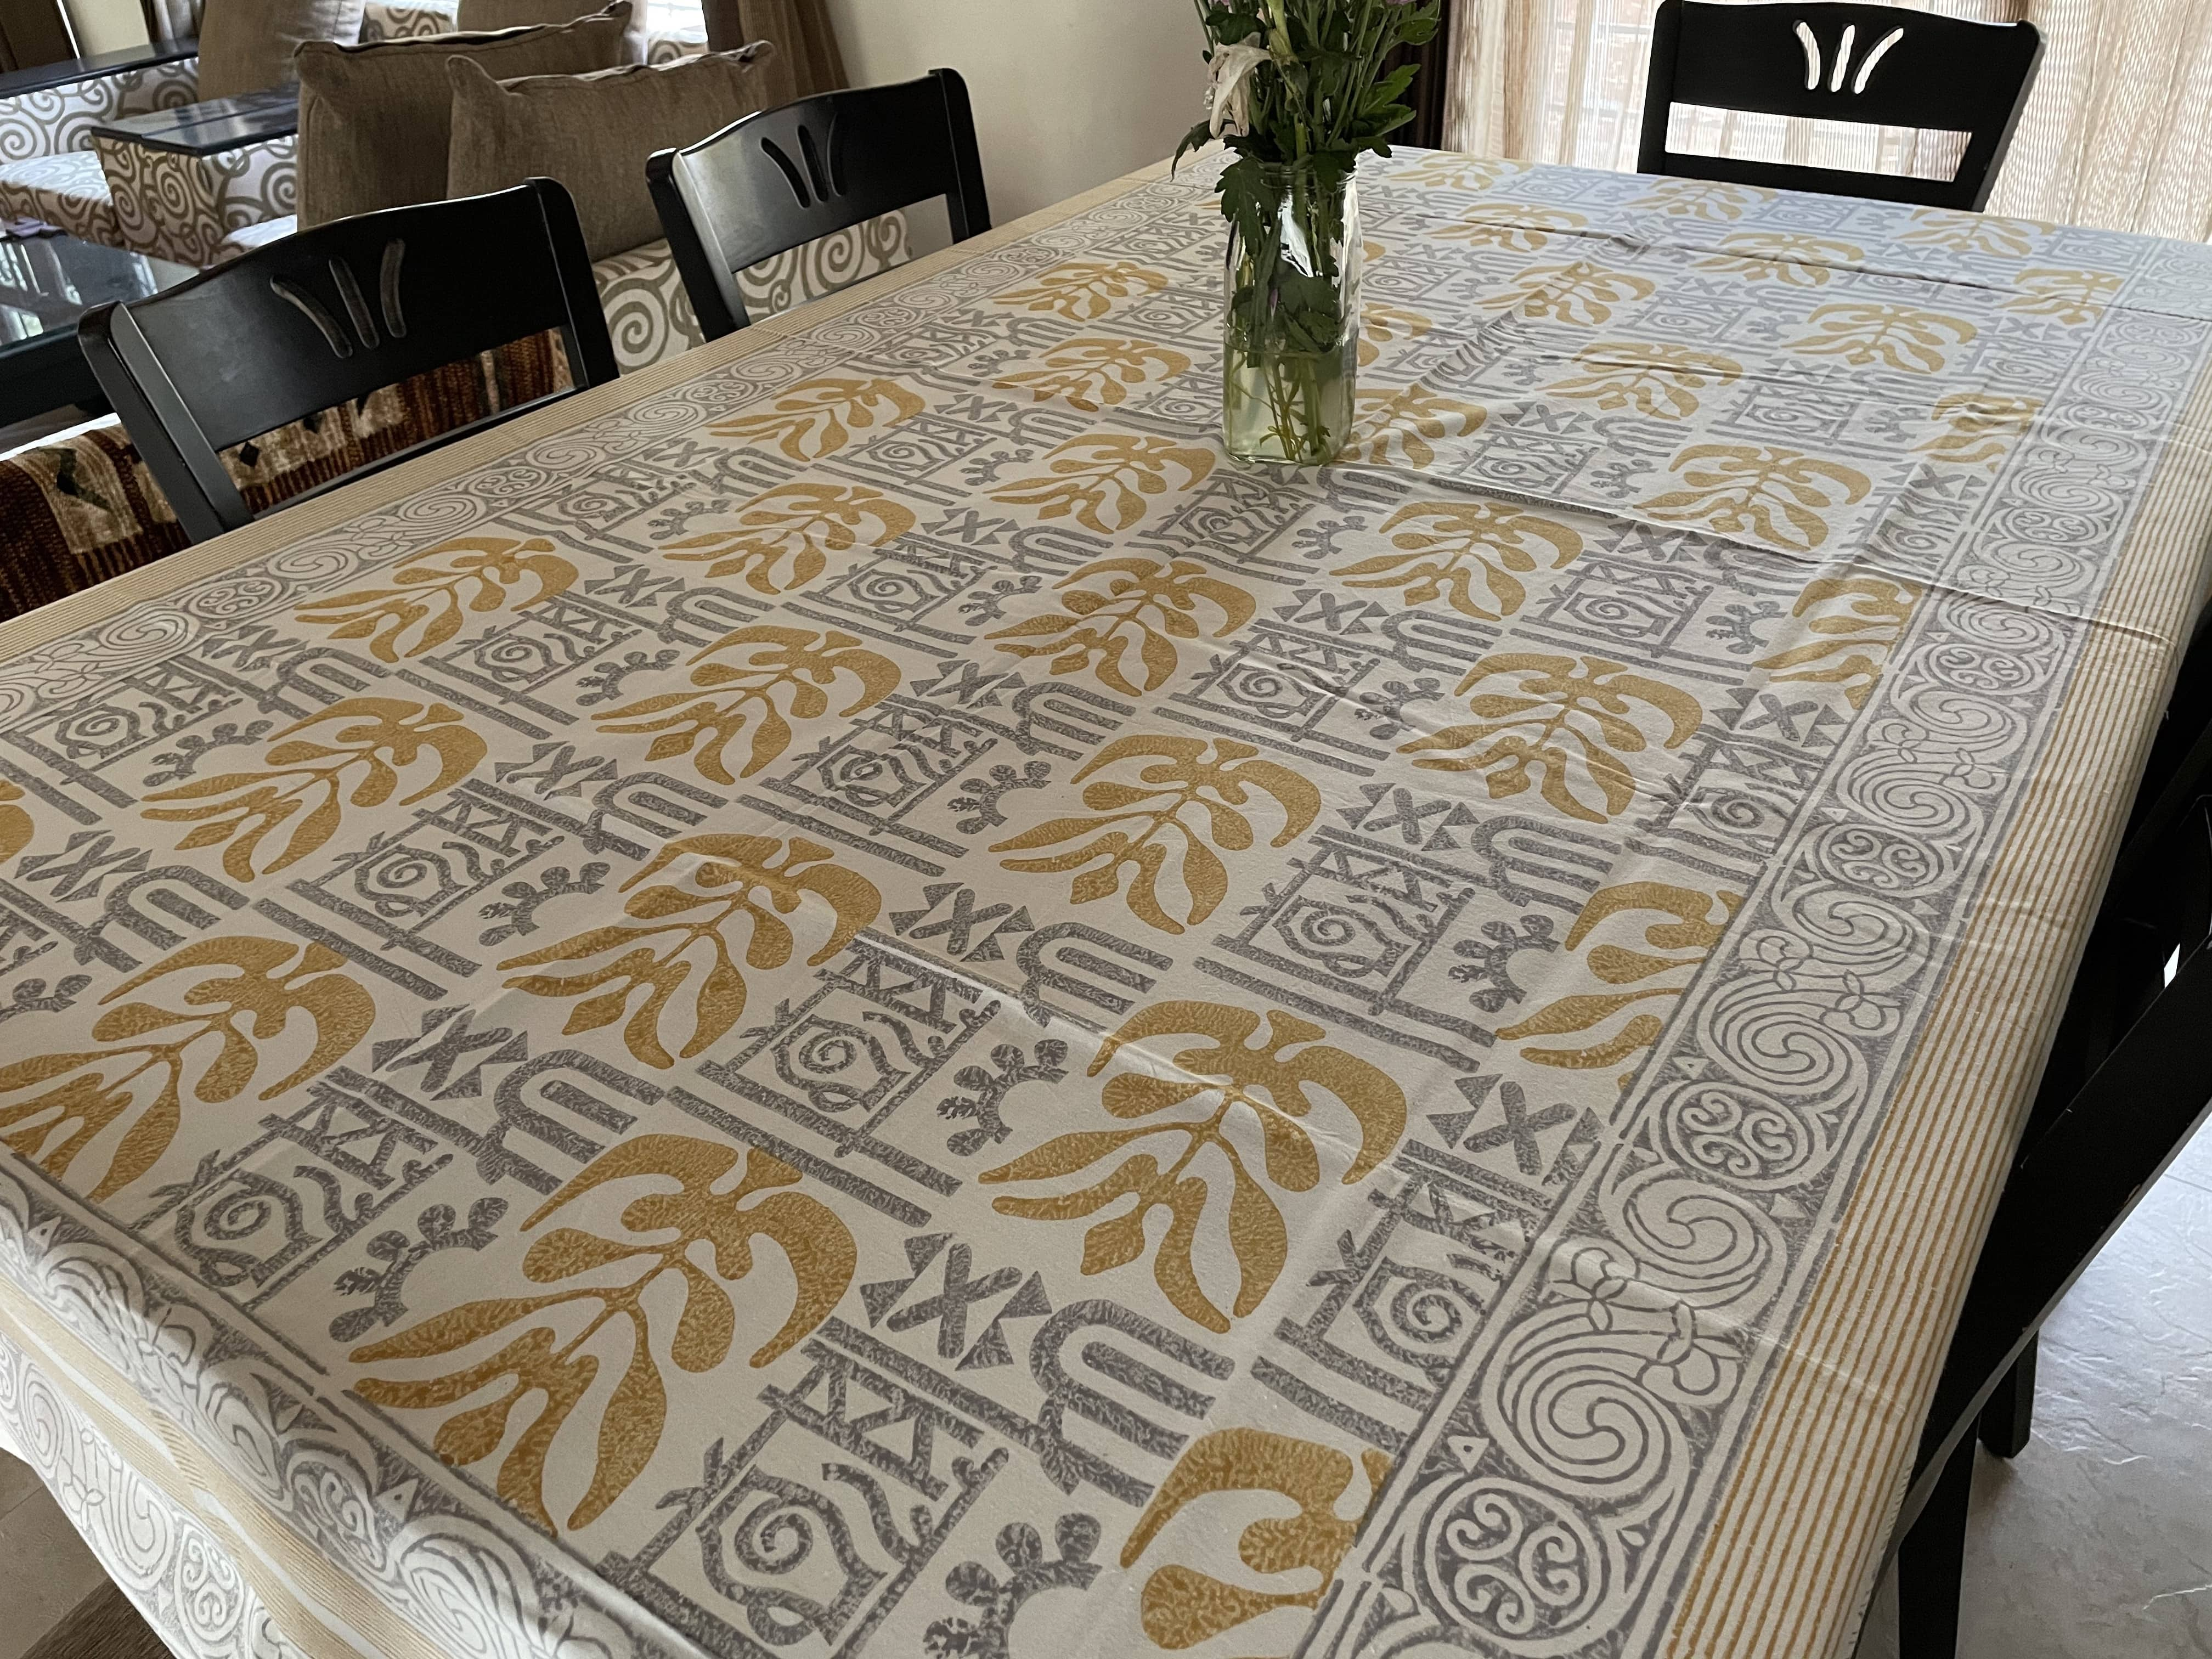 Jaipuri 6 Seater Cotton Table Cover - 8019